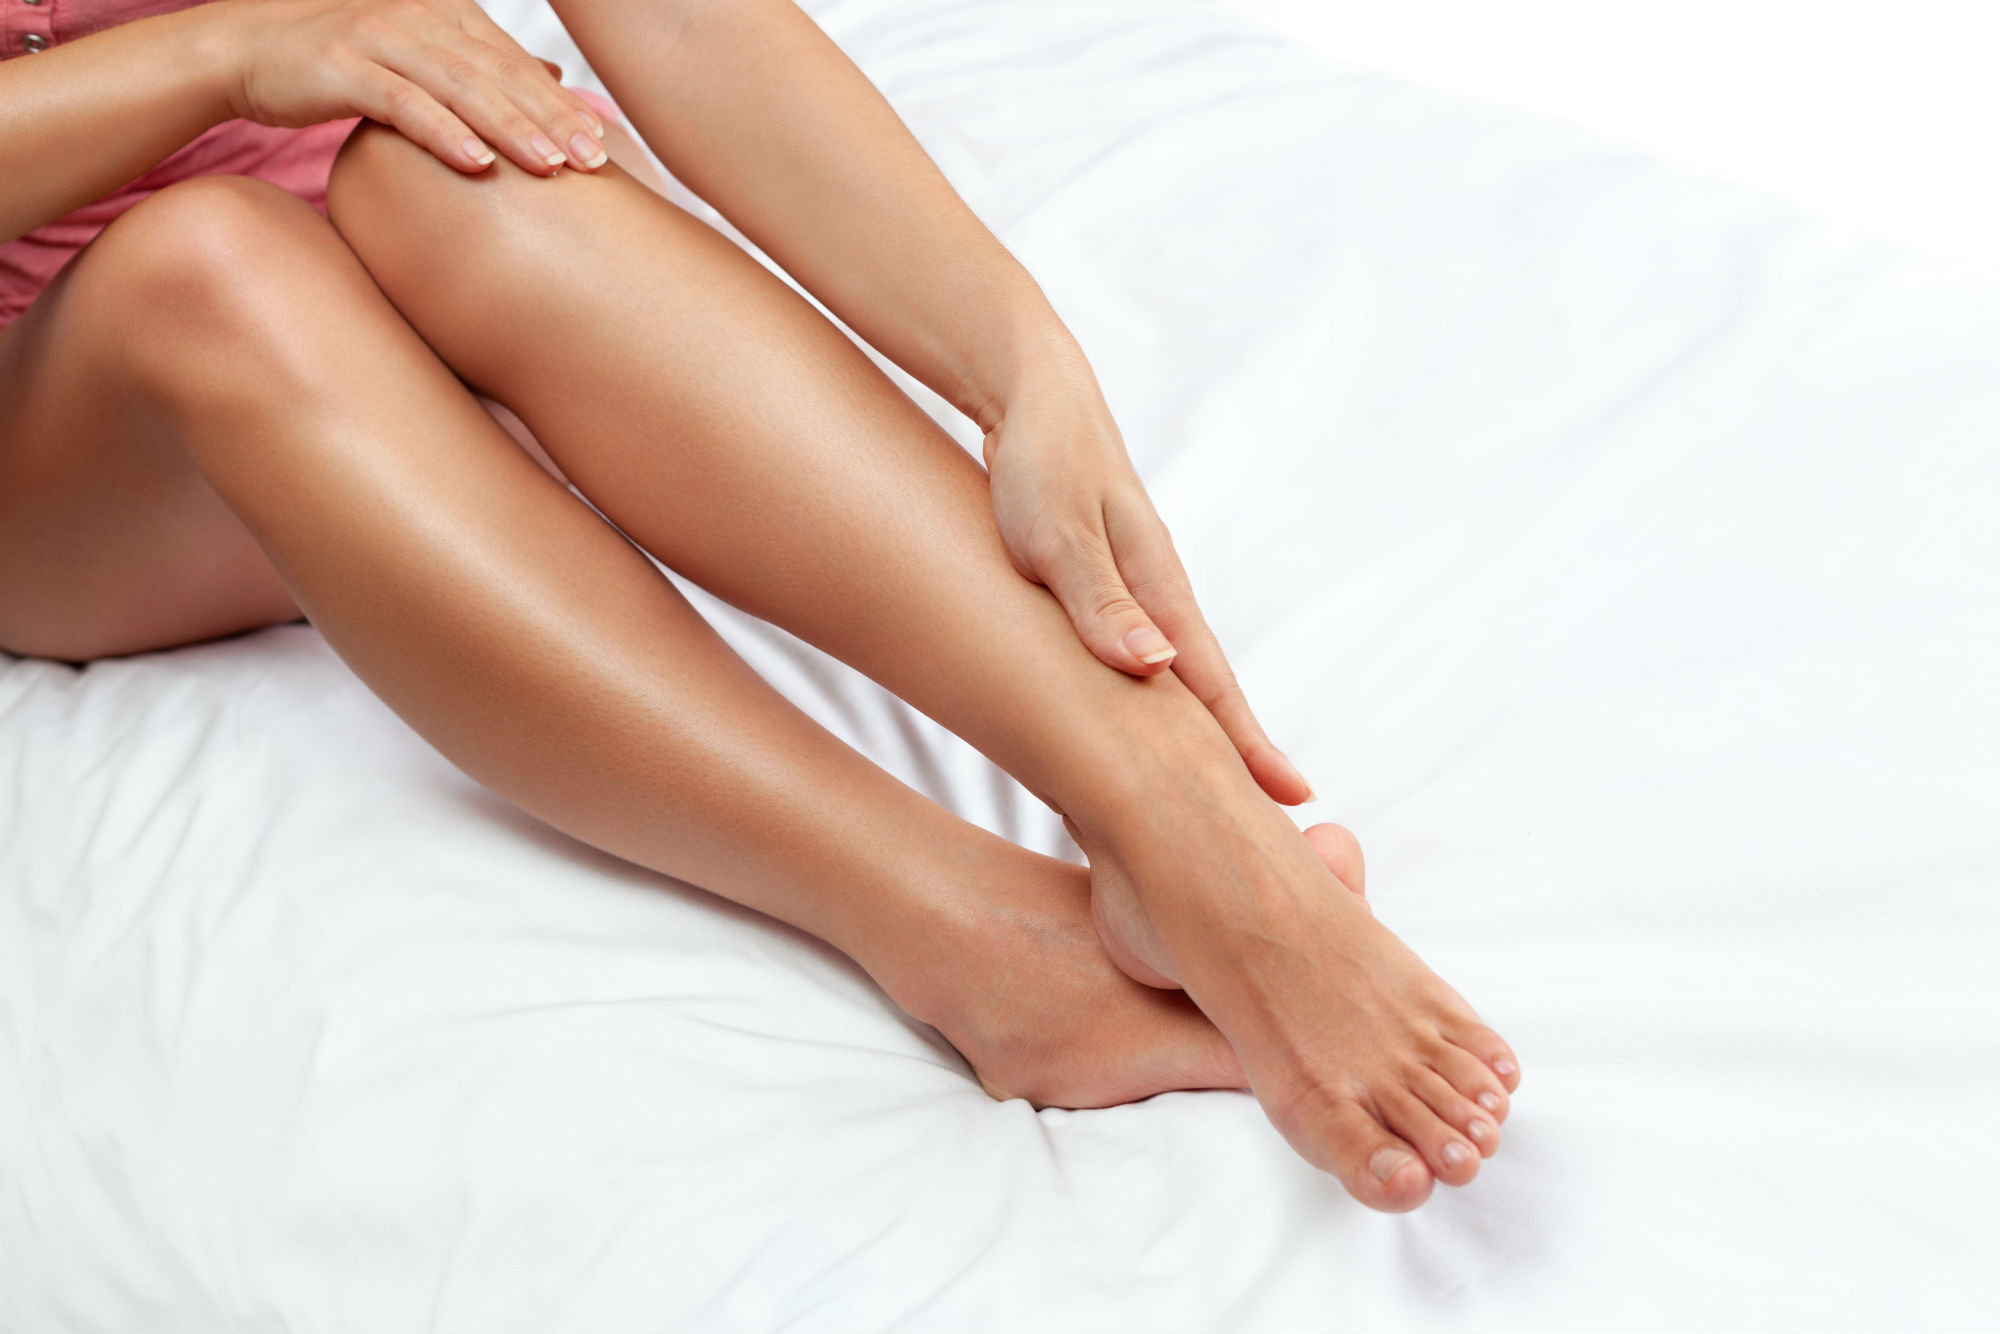 Misconceptions About Laser and IPL Hair Removal